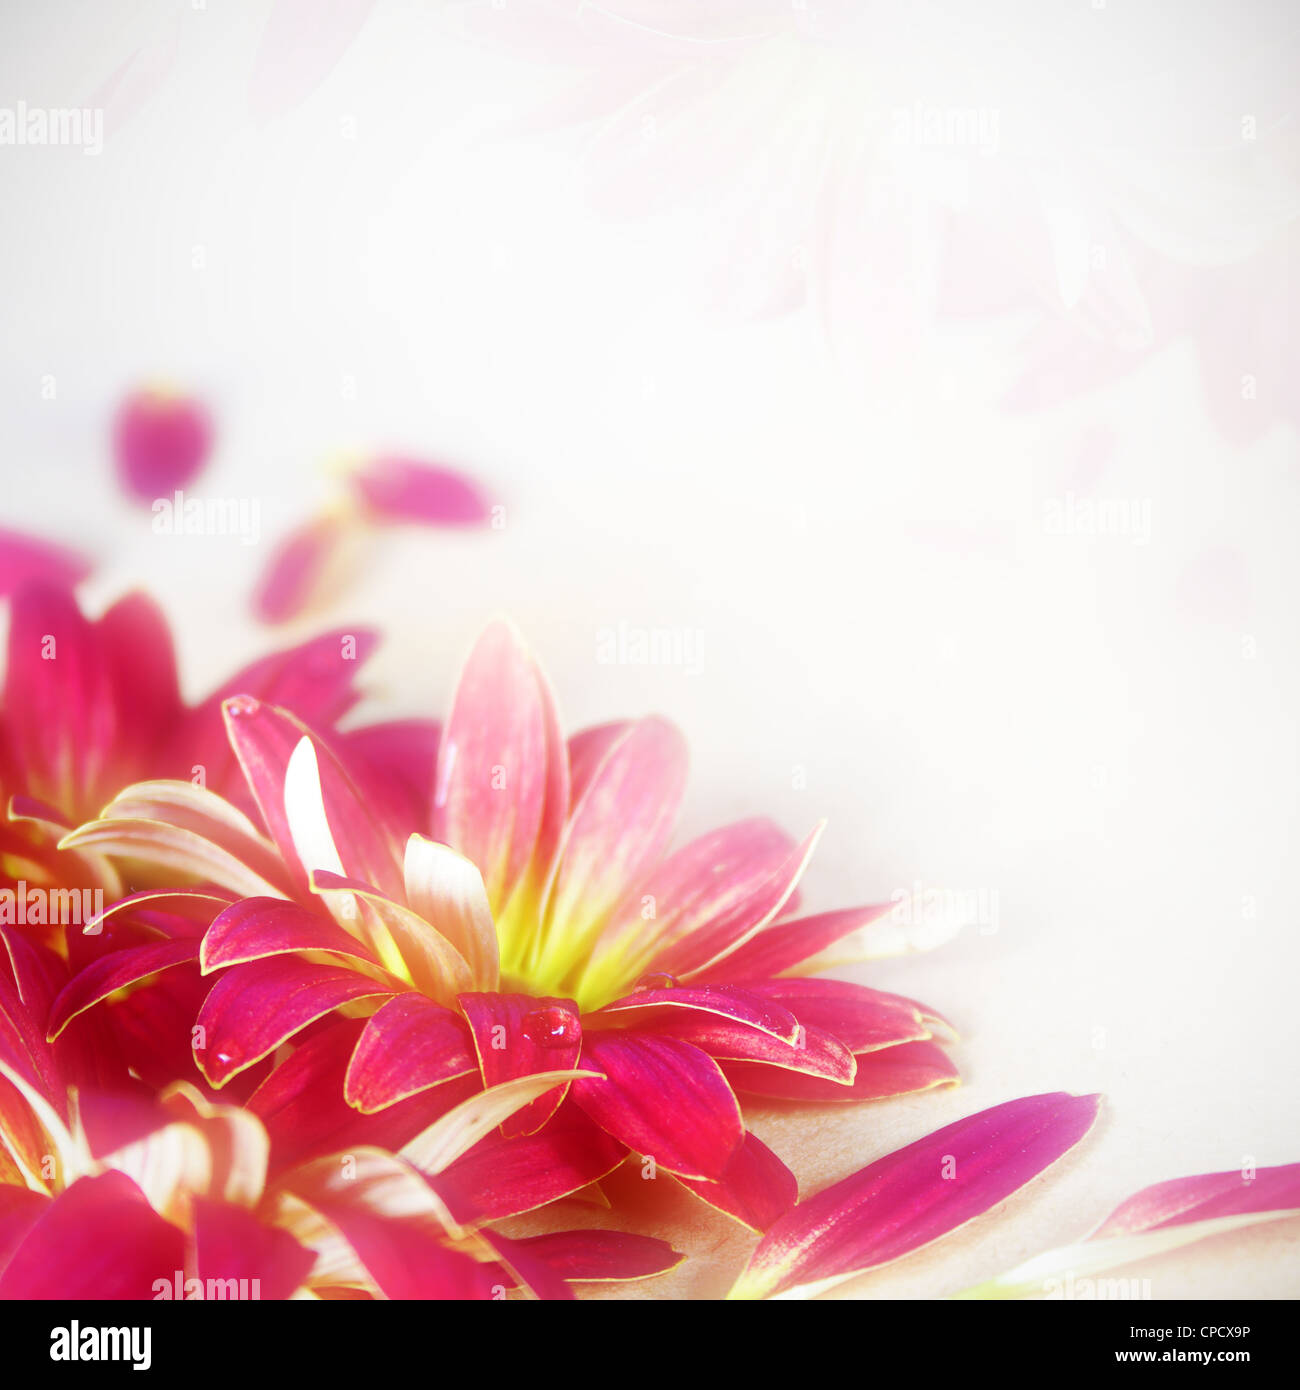 Floral Magenta Flower Background Very Shallow DOF - Stock Image